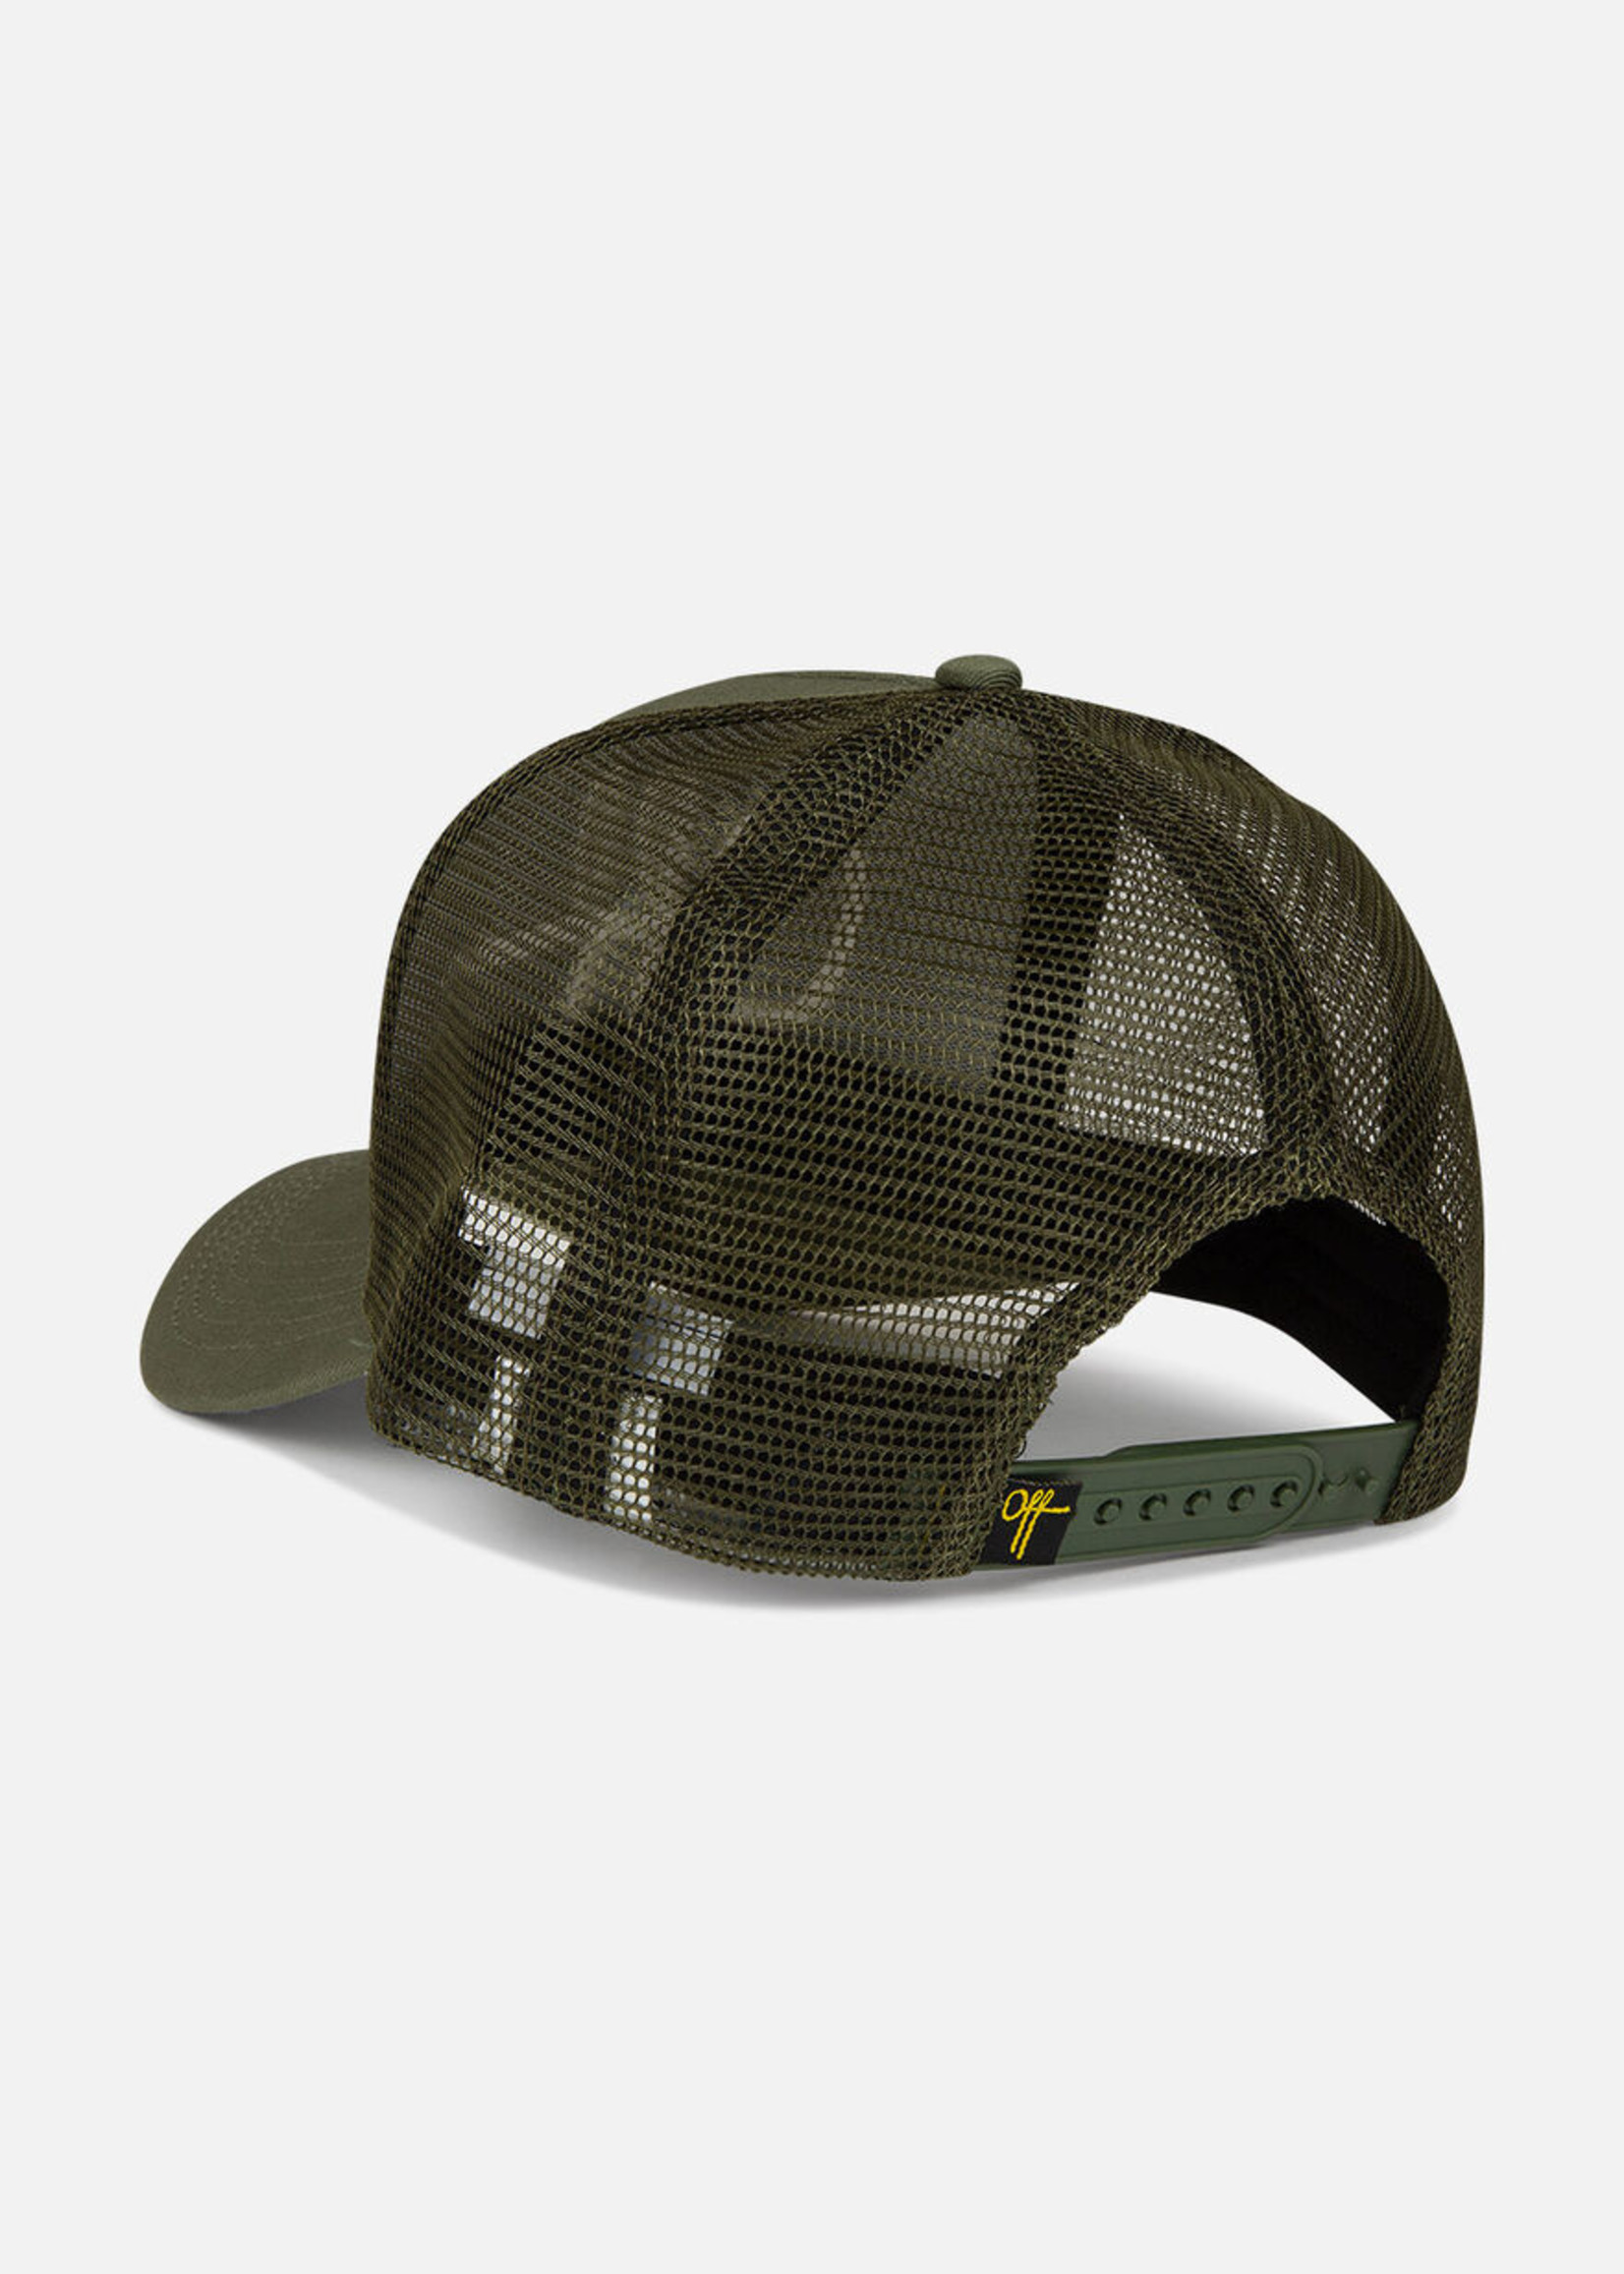 OFF THE PITCH | The Sage Trucker - Green